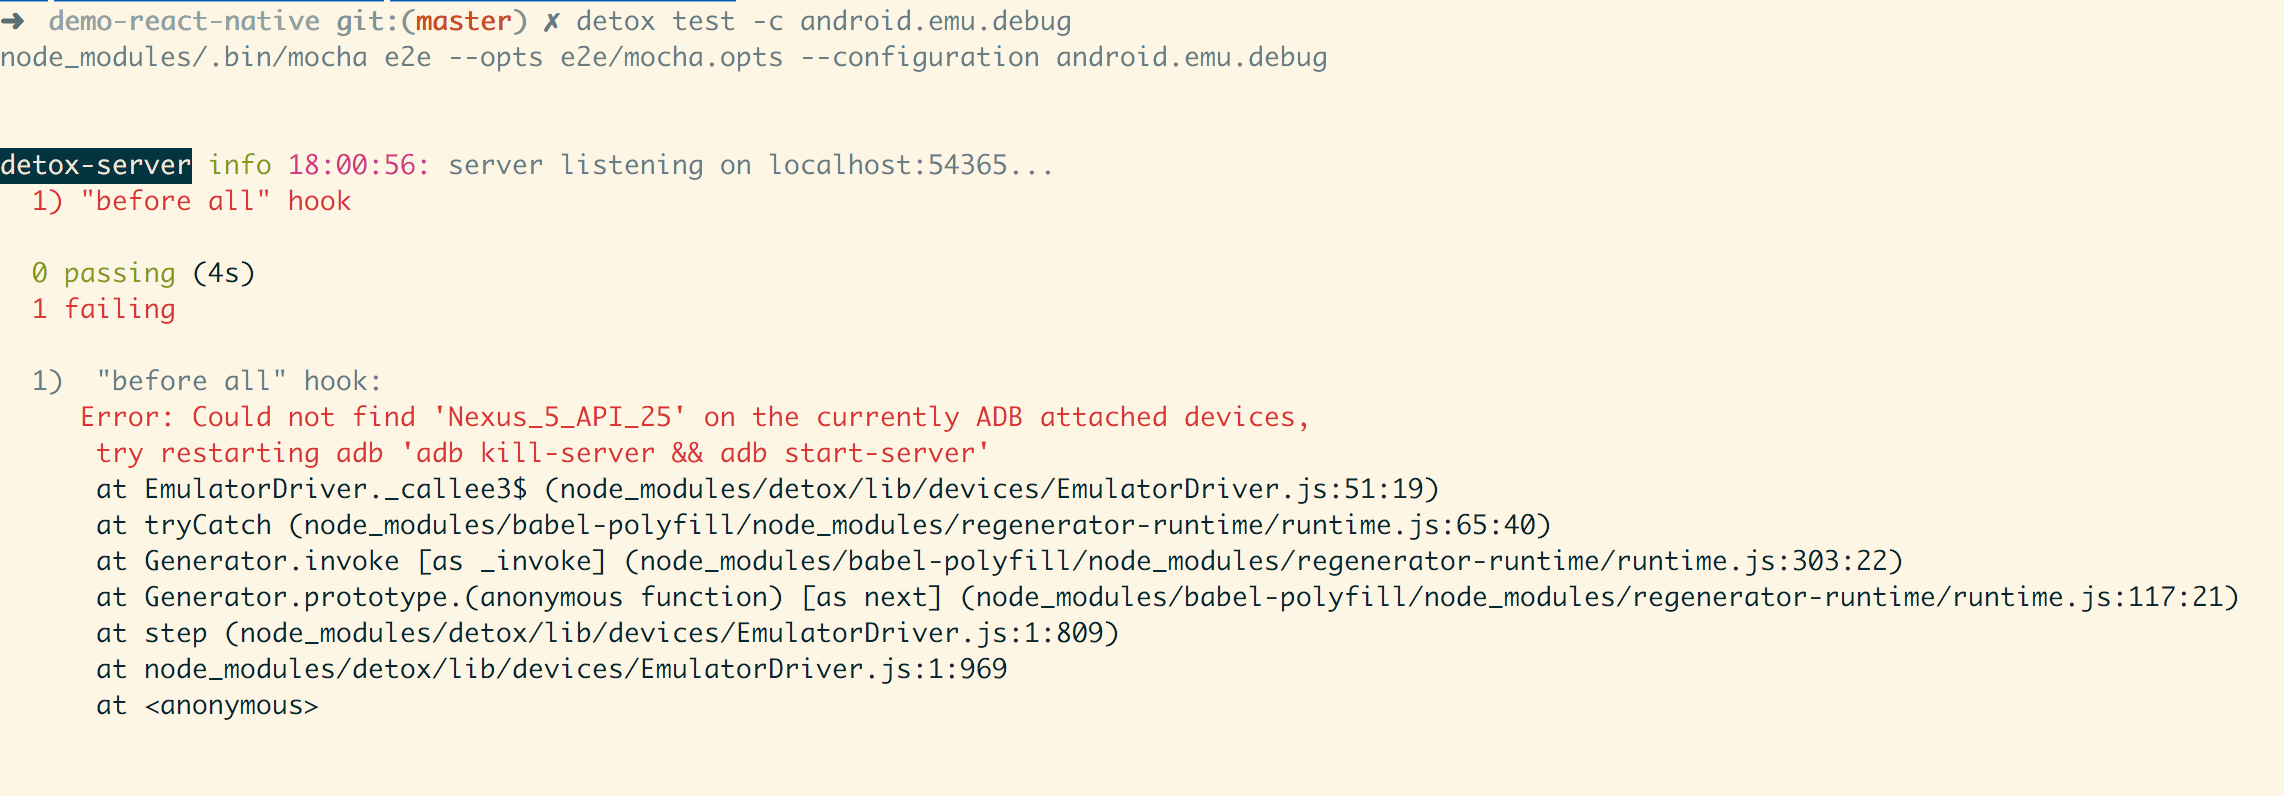 Error: Could not find 'Nexus_5_API_25' on the currently ADB attached